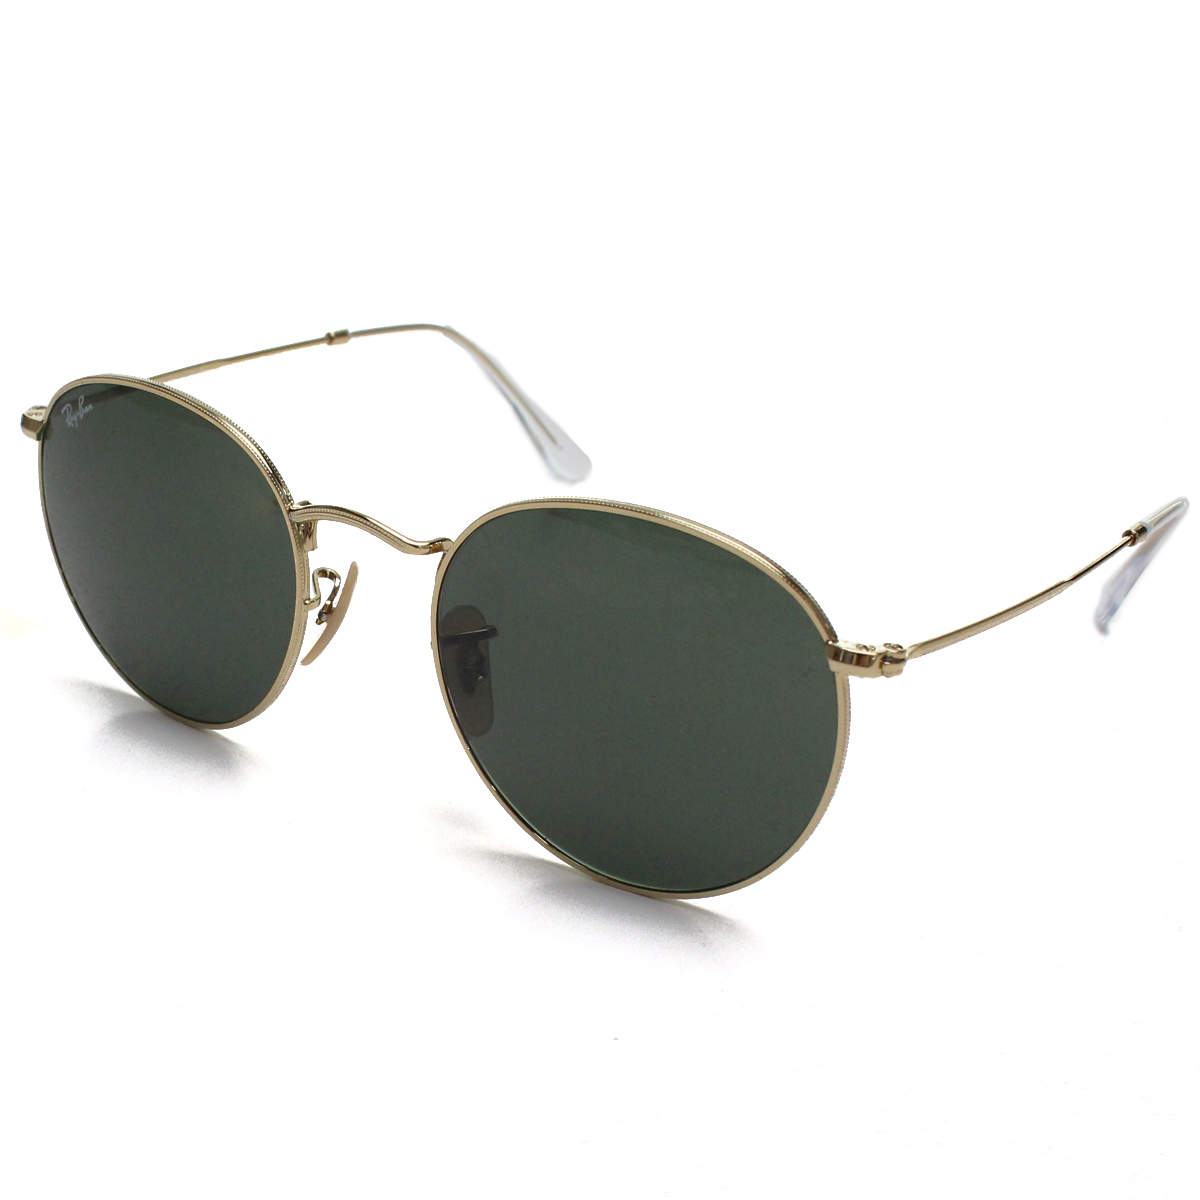 9940605d1302 Bighit The total brand wholesale: Ray-Ban Ray-Ban sunglasses RB3447 001  (53) gold system | Rakuten Global Market